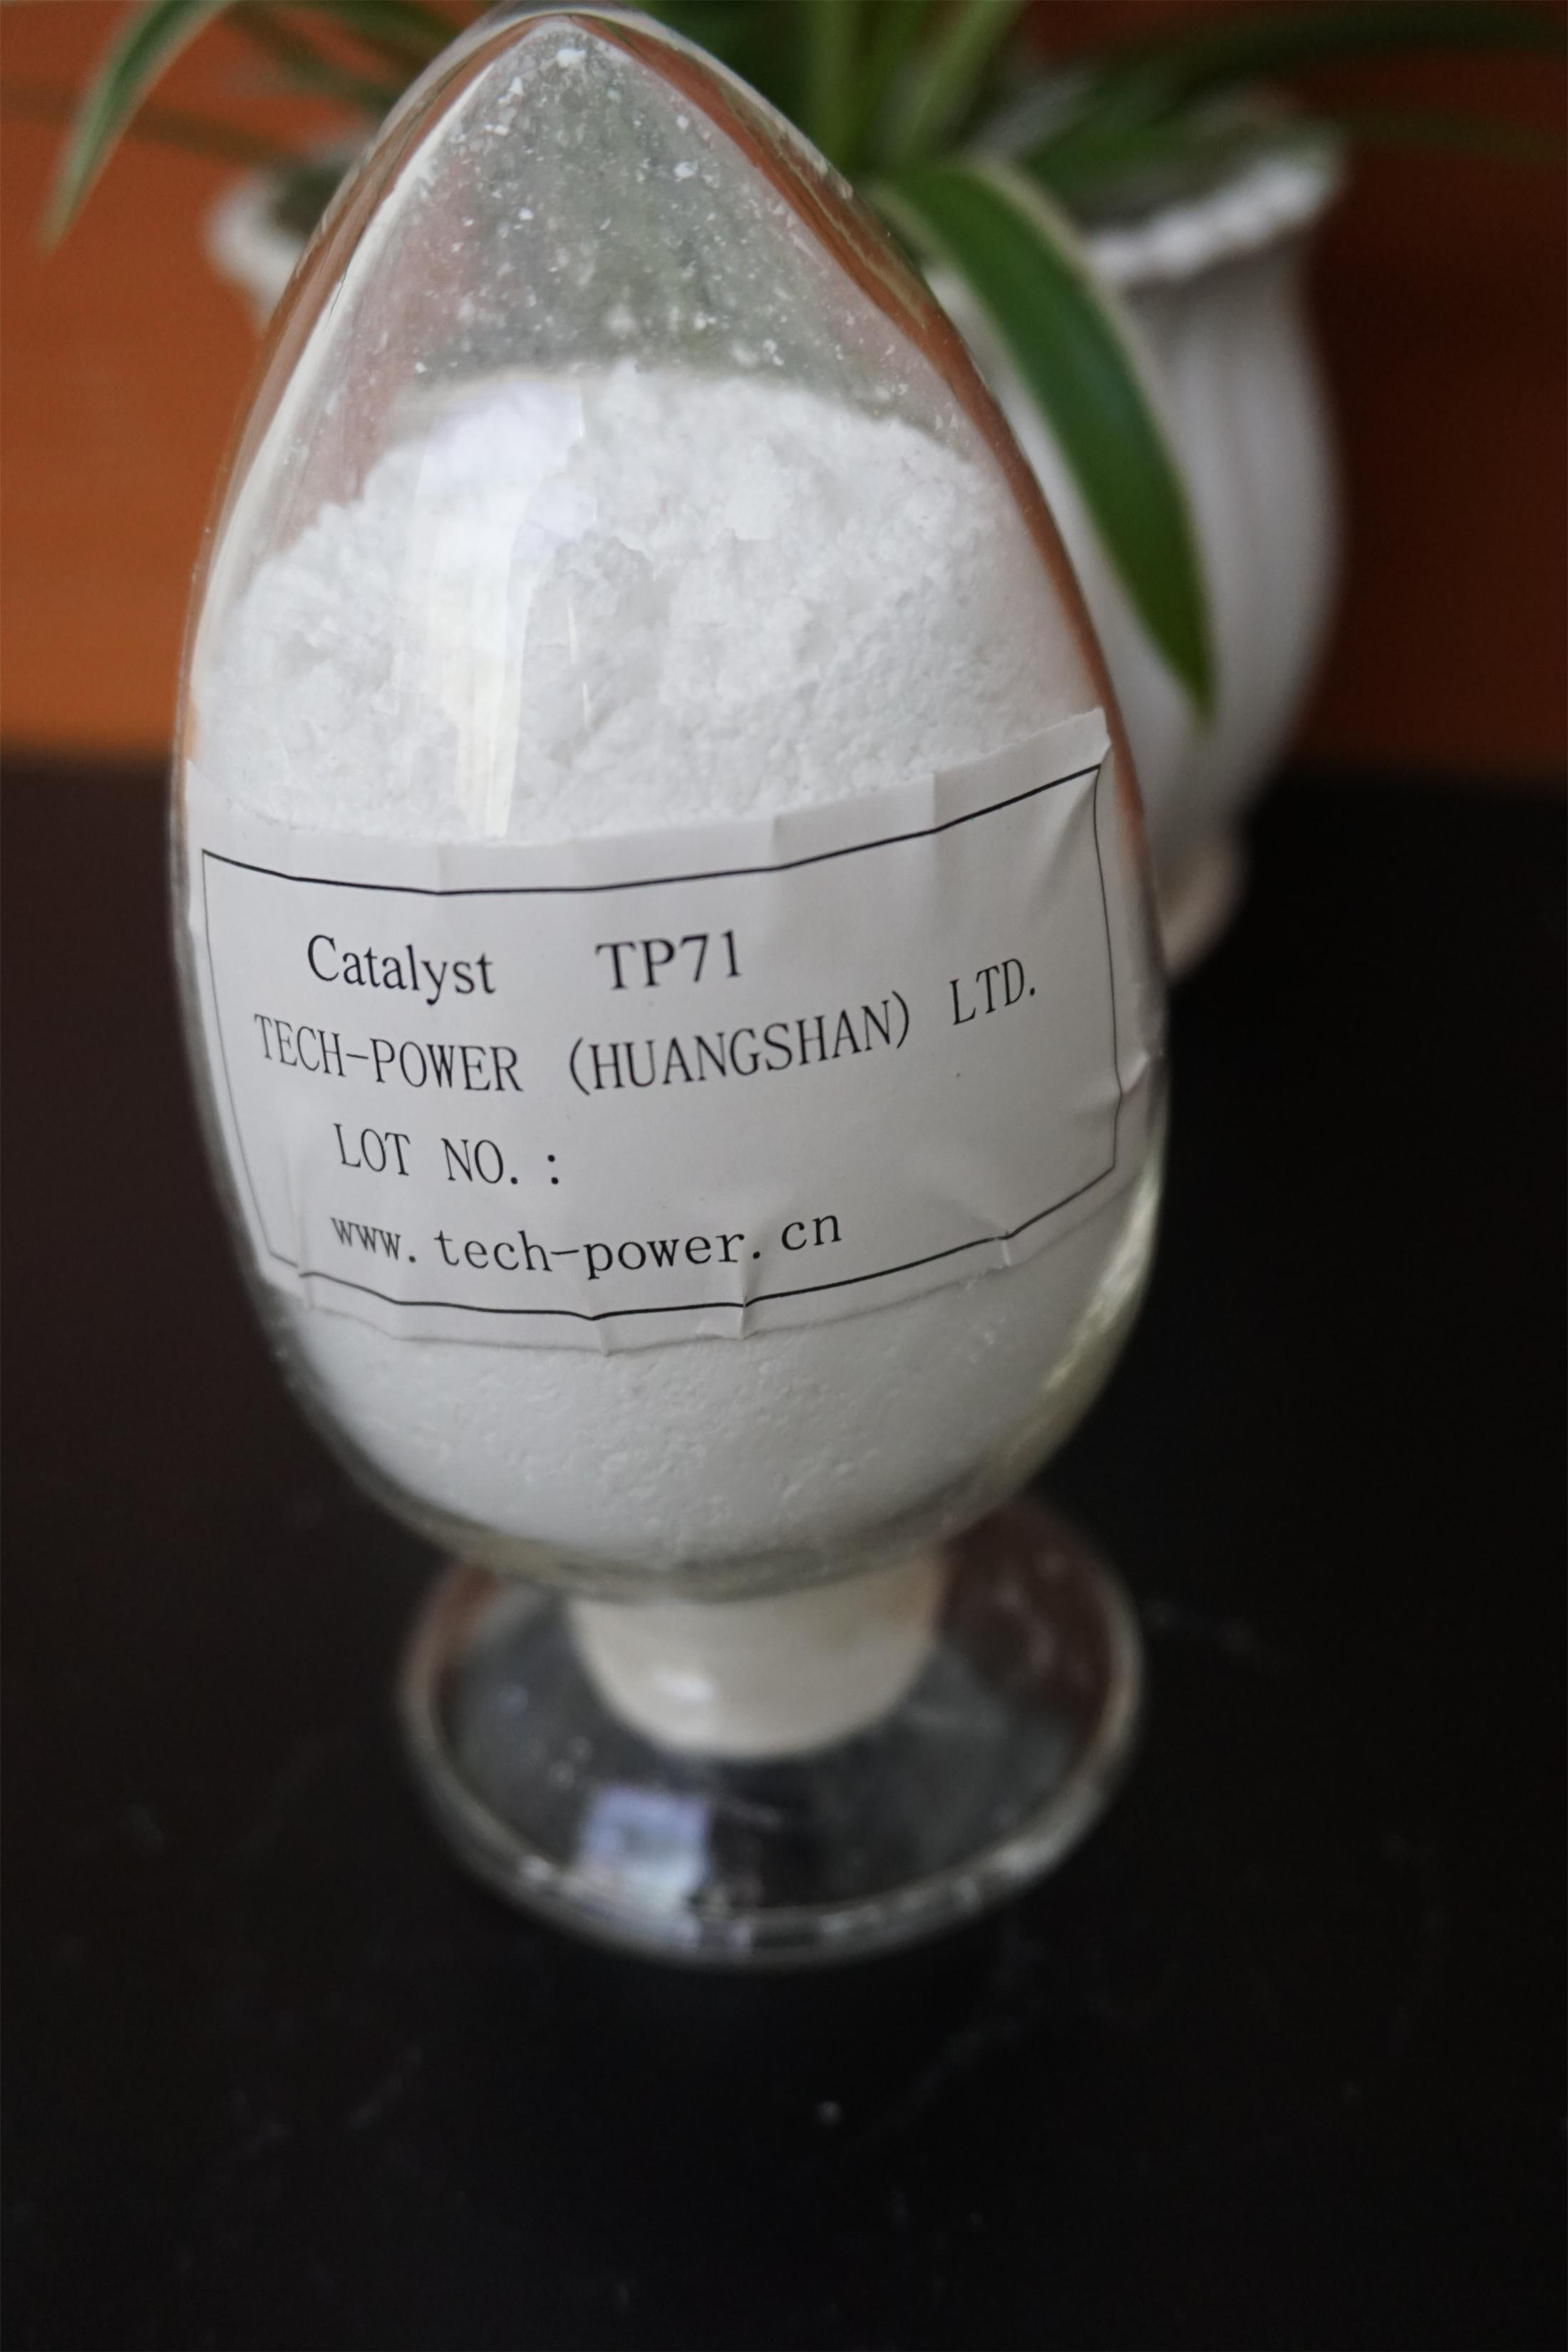 Tp71 Catalyst Which Is Equivalent to Butaflow-71 (TIN catalyst)